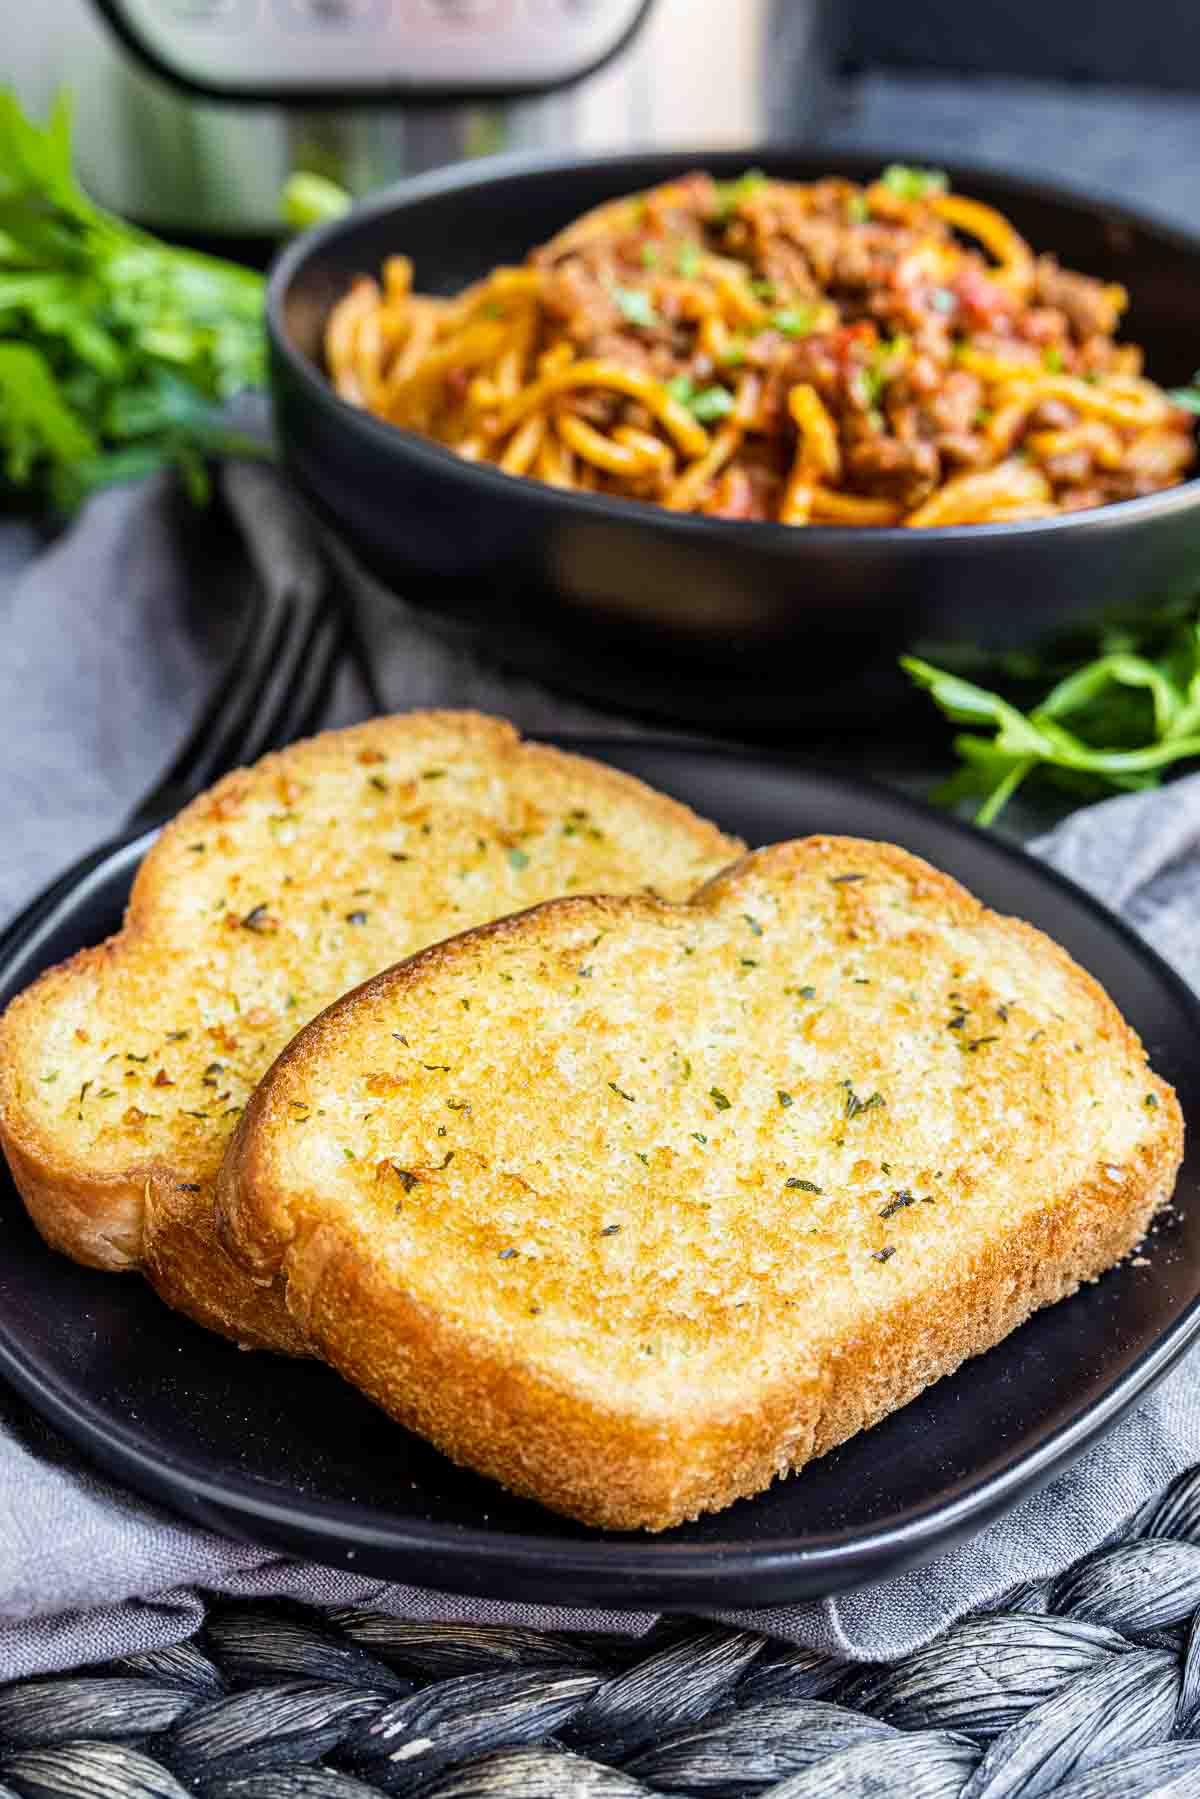 Texas Toast on a plate with spaghetti in a bowl